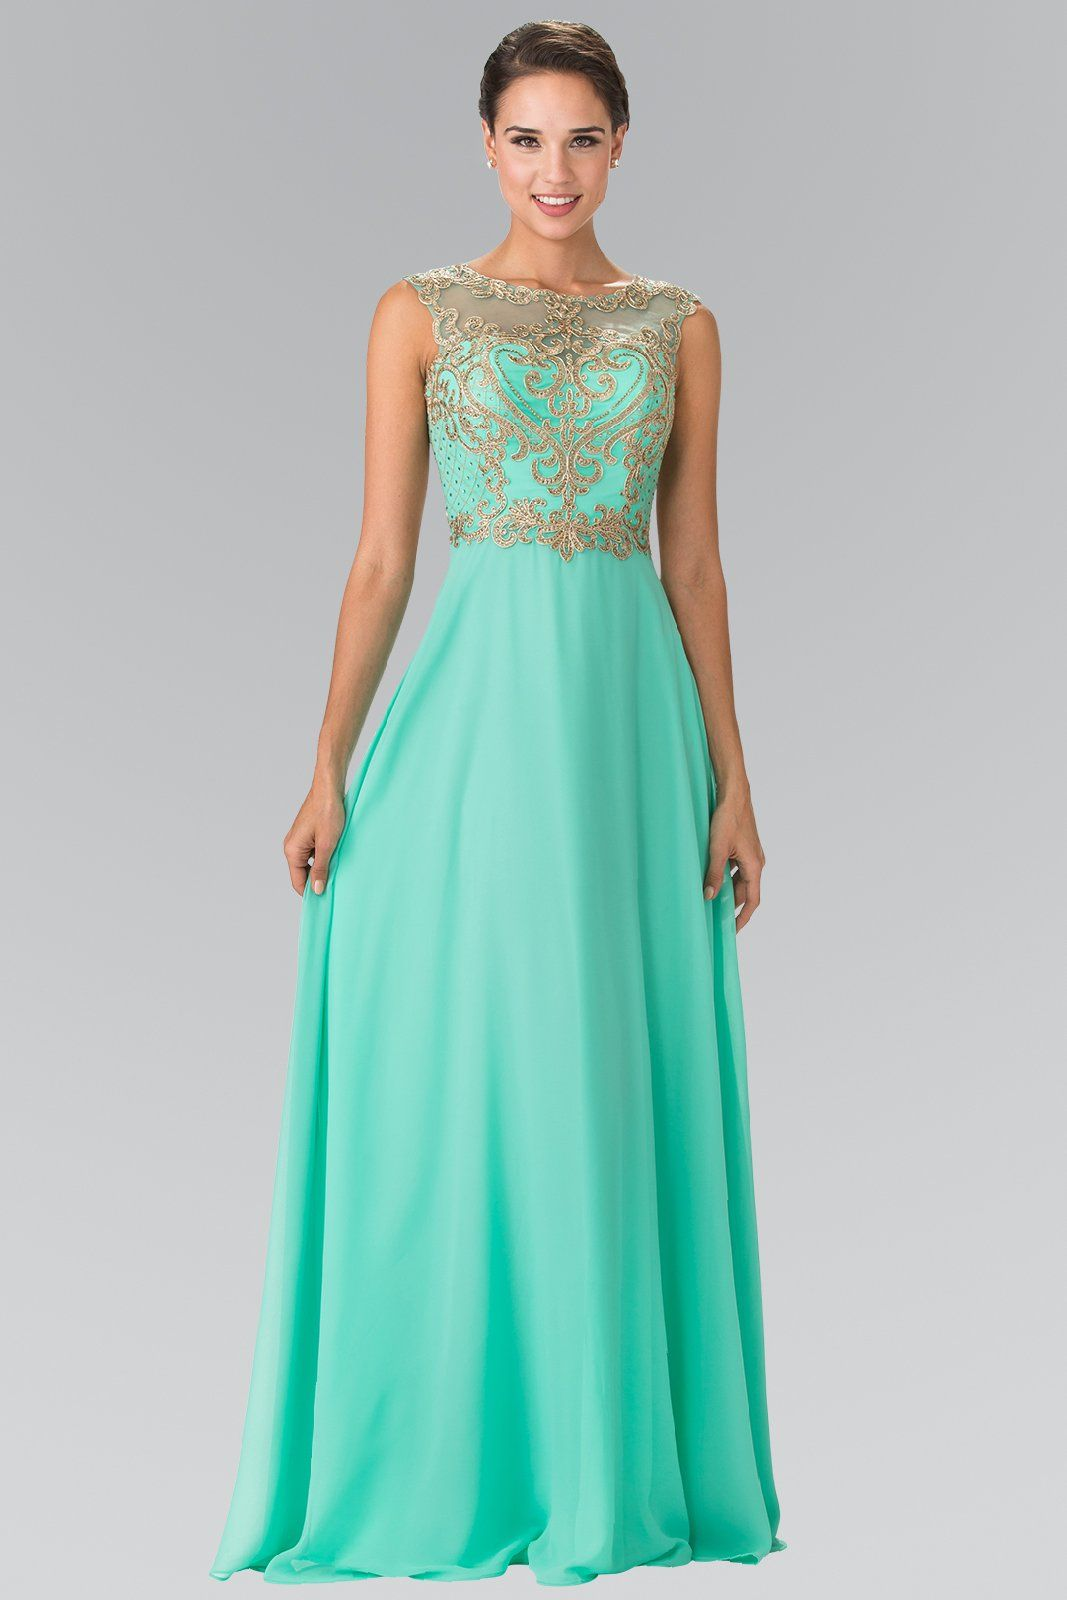 59c979c65ed Style Number  GLS 2316 A-Line Chiffon Gown with Lace Applique Illusion  Bodice Available in Navy